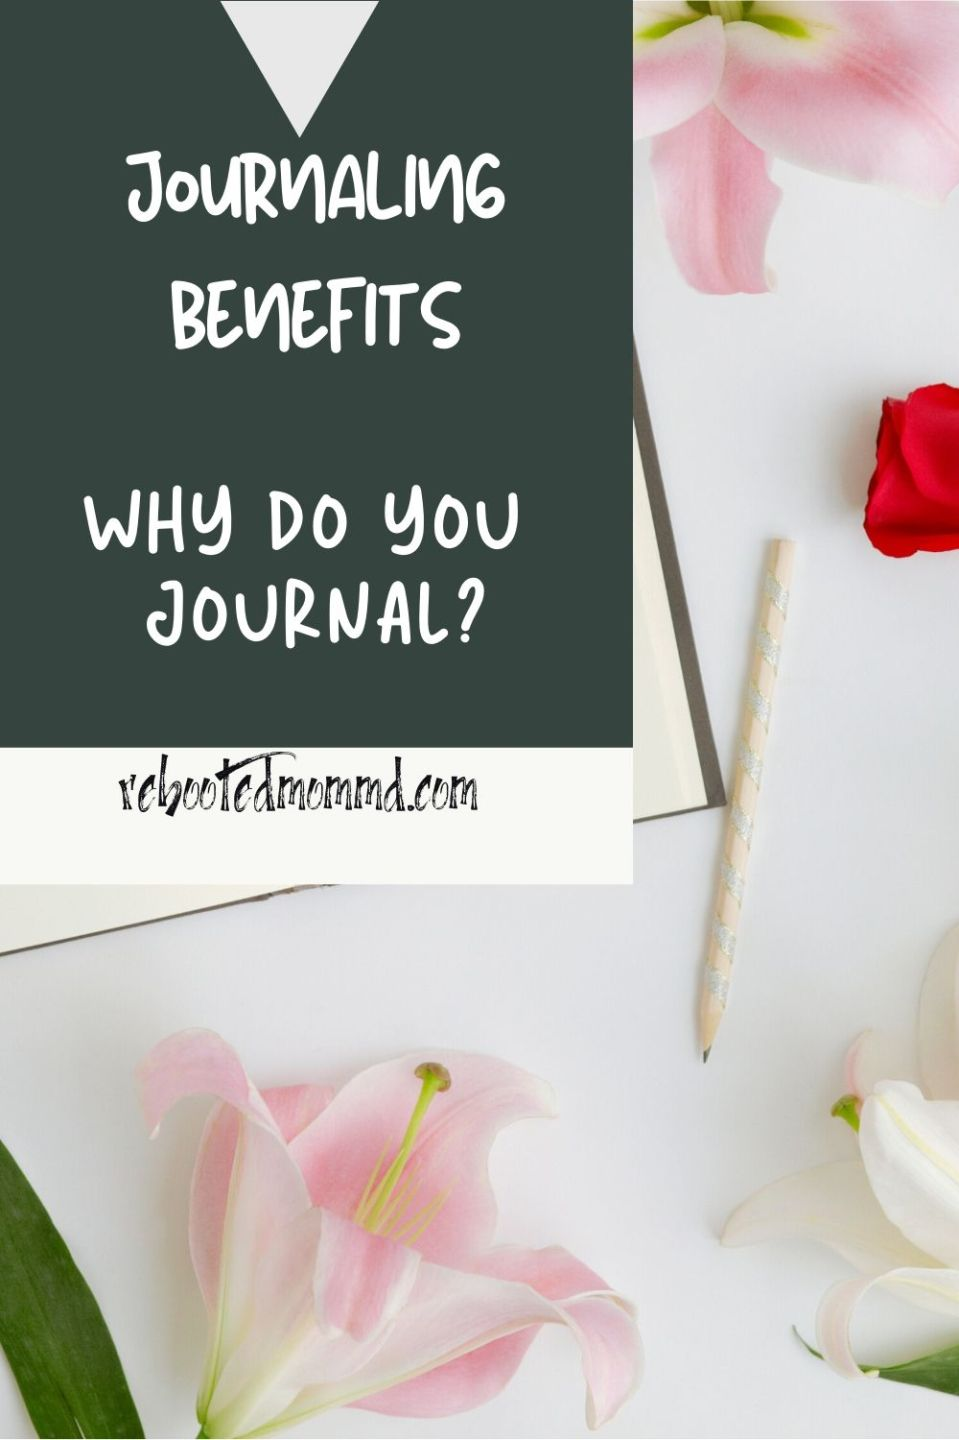 Journaling Means Something Different to Everyone